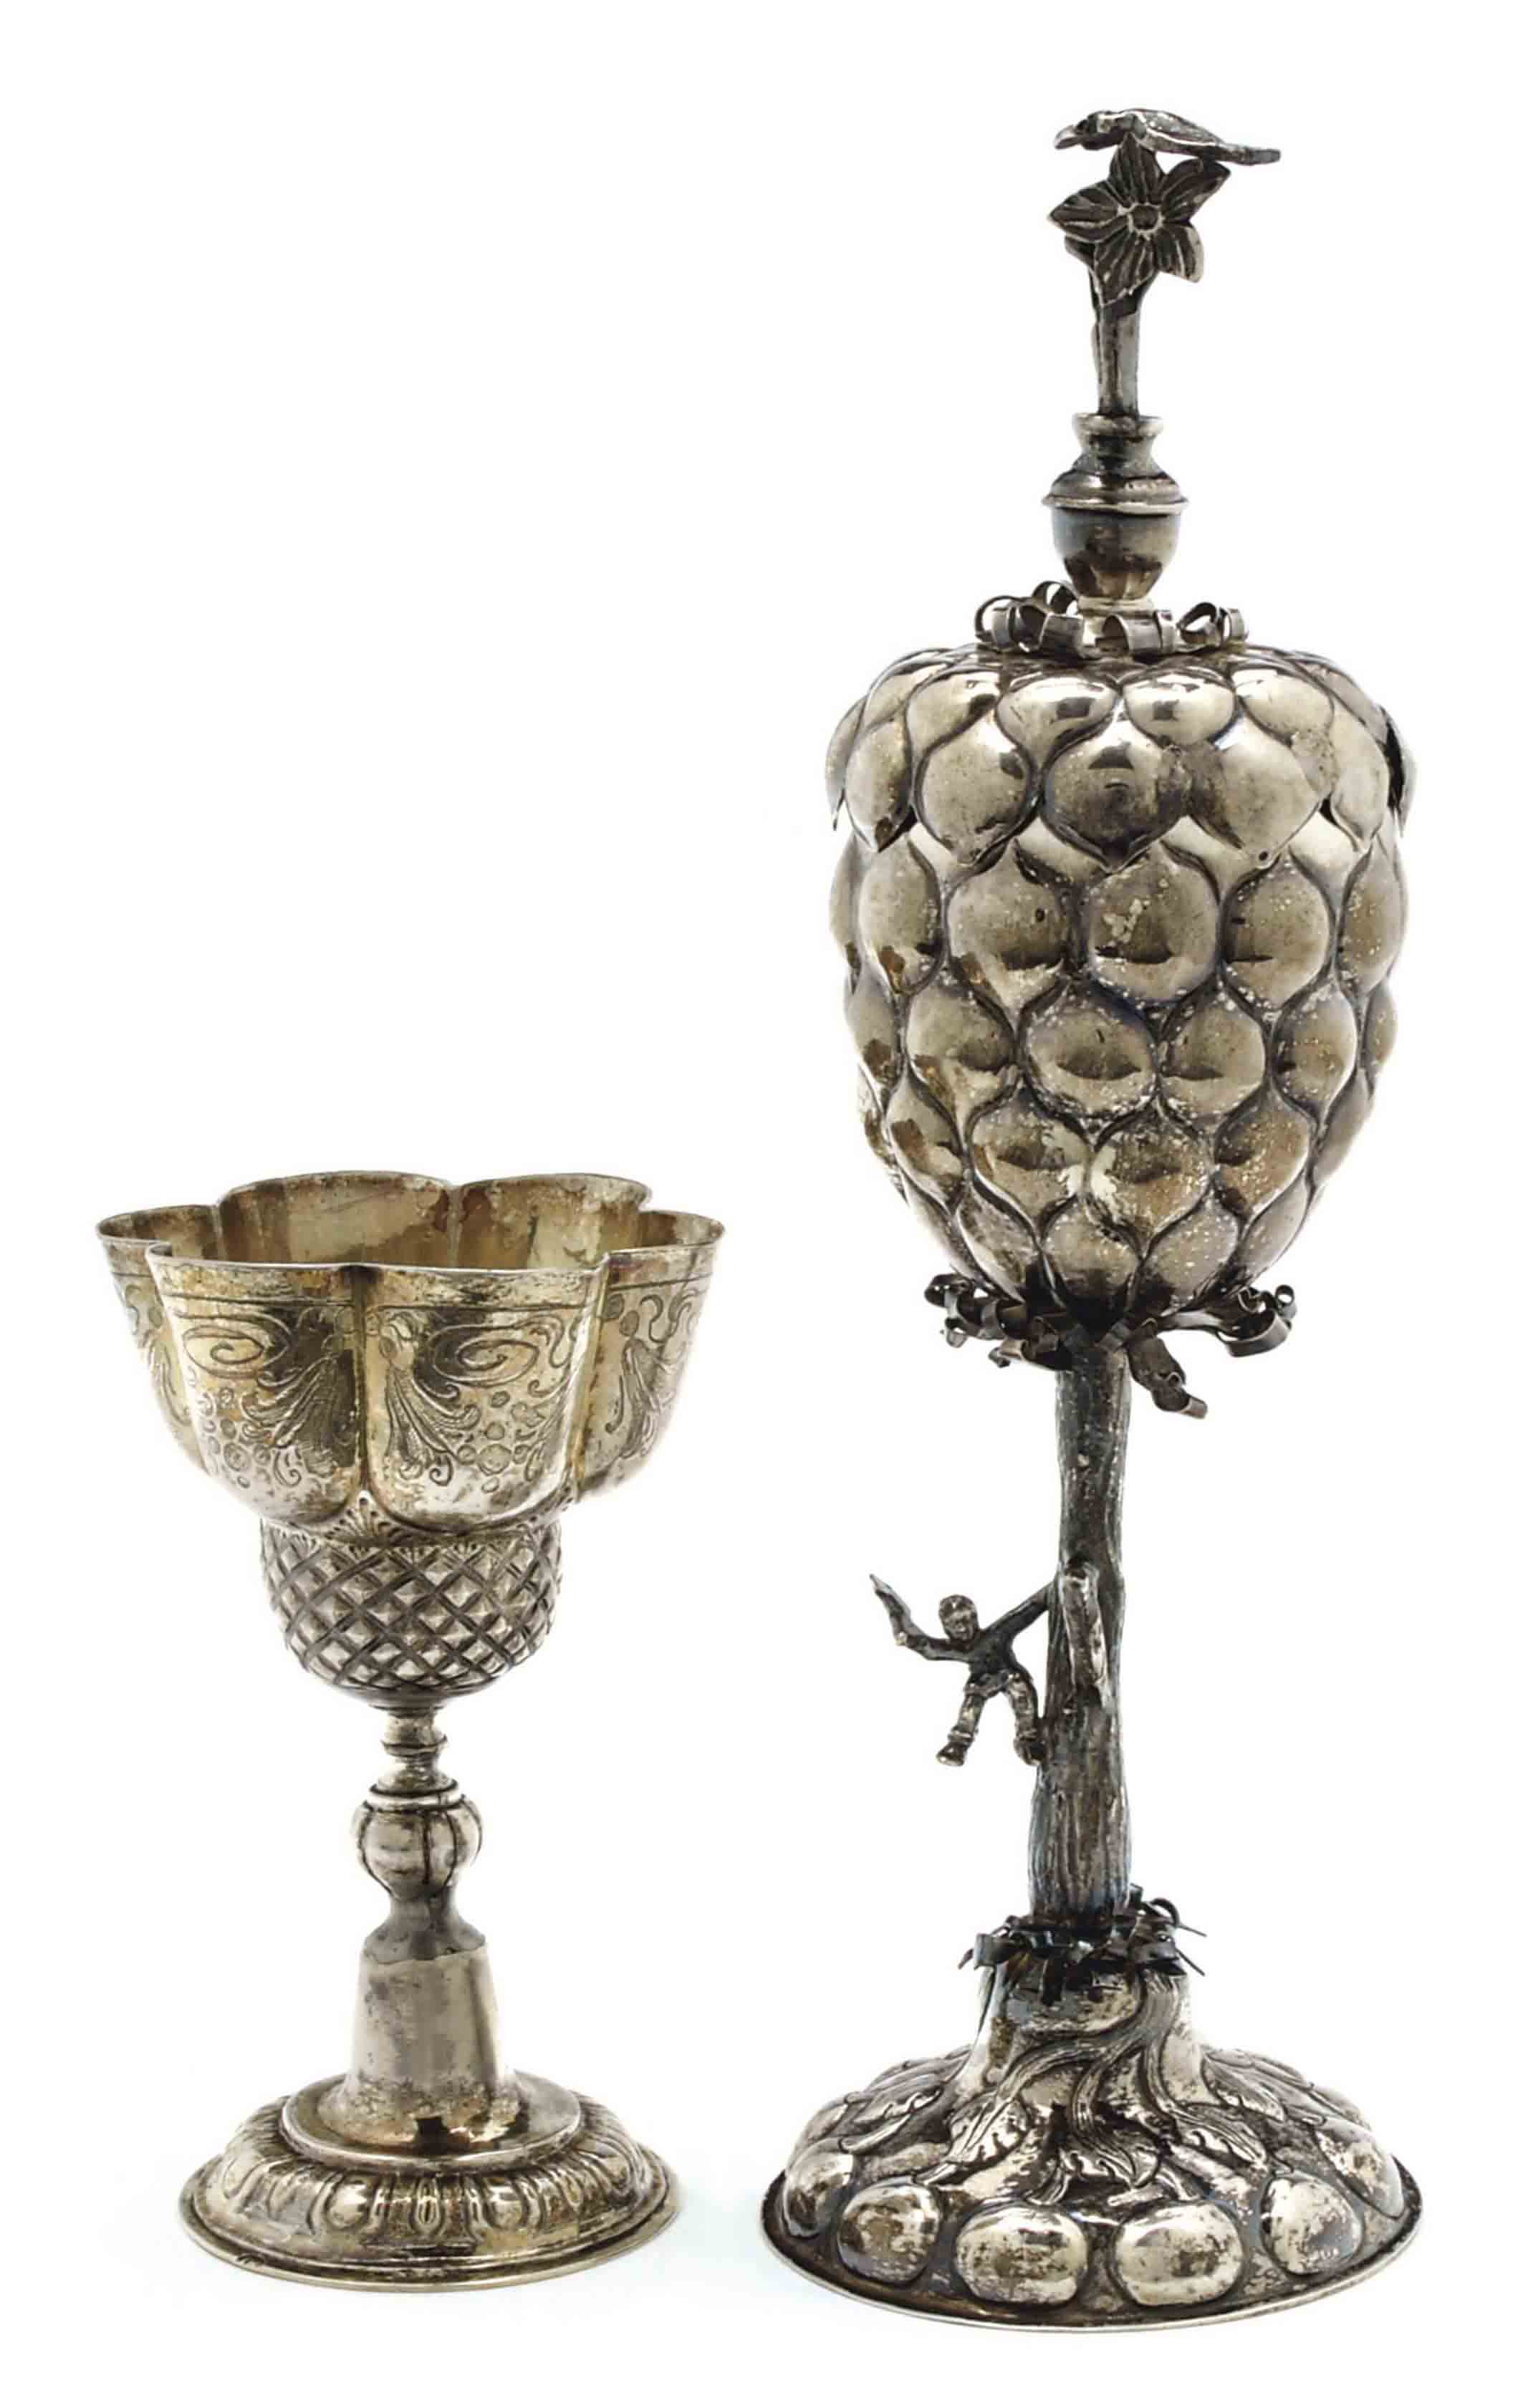 A GERMAN SILVER-GILT LOBED CUP,